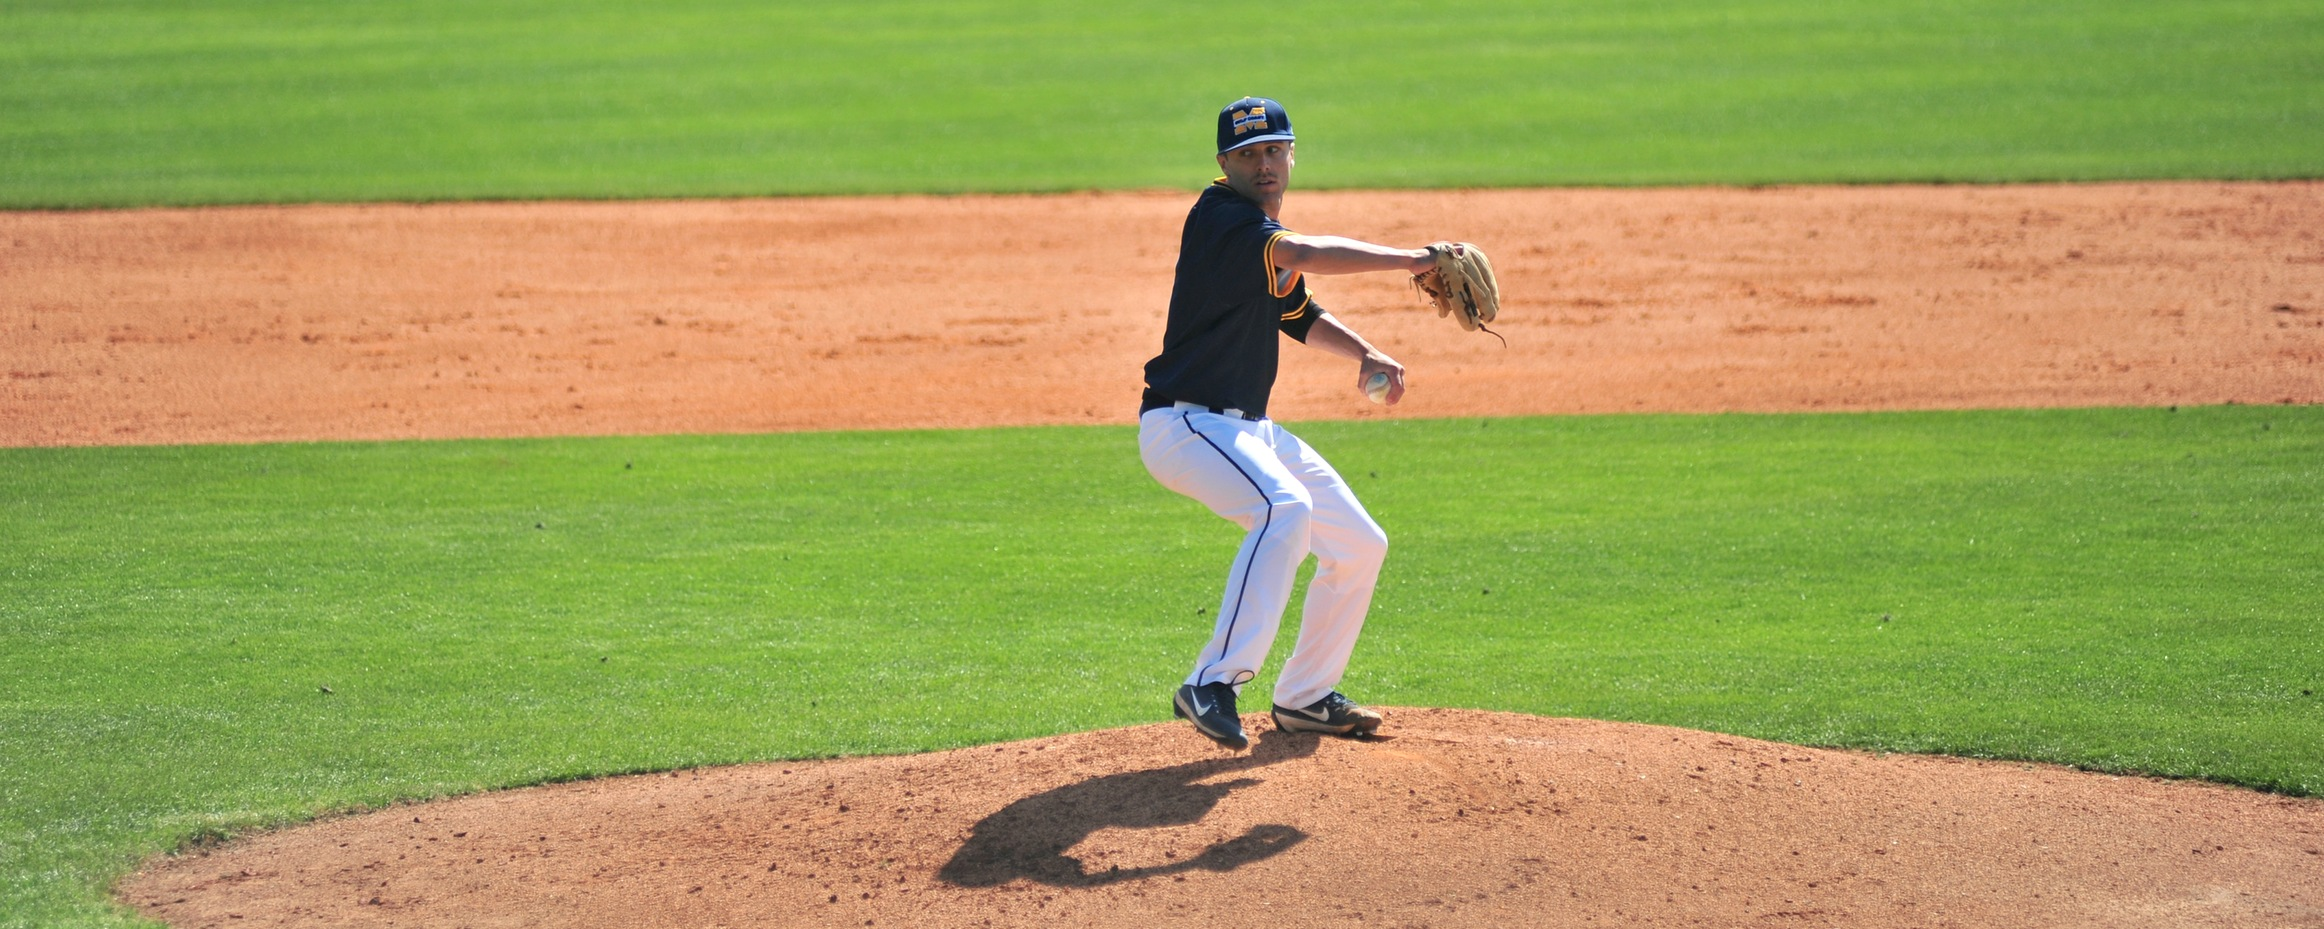 Mills-Derouen wins MACJC Pitcher of the Week again